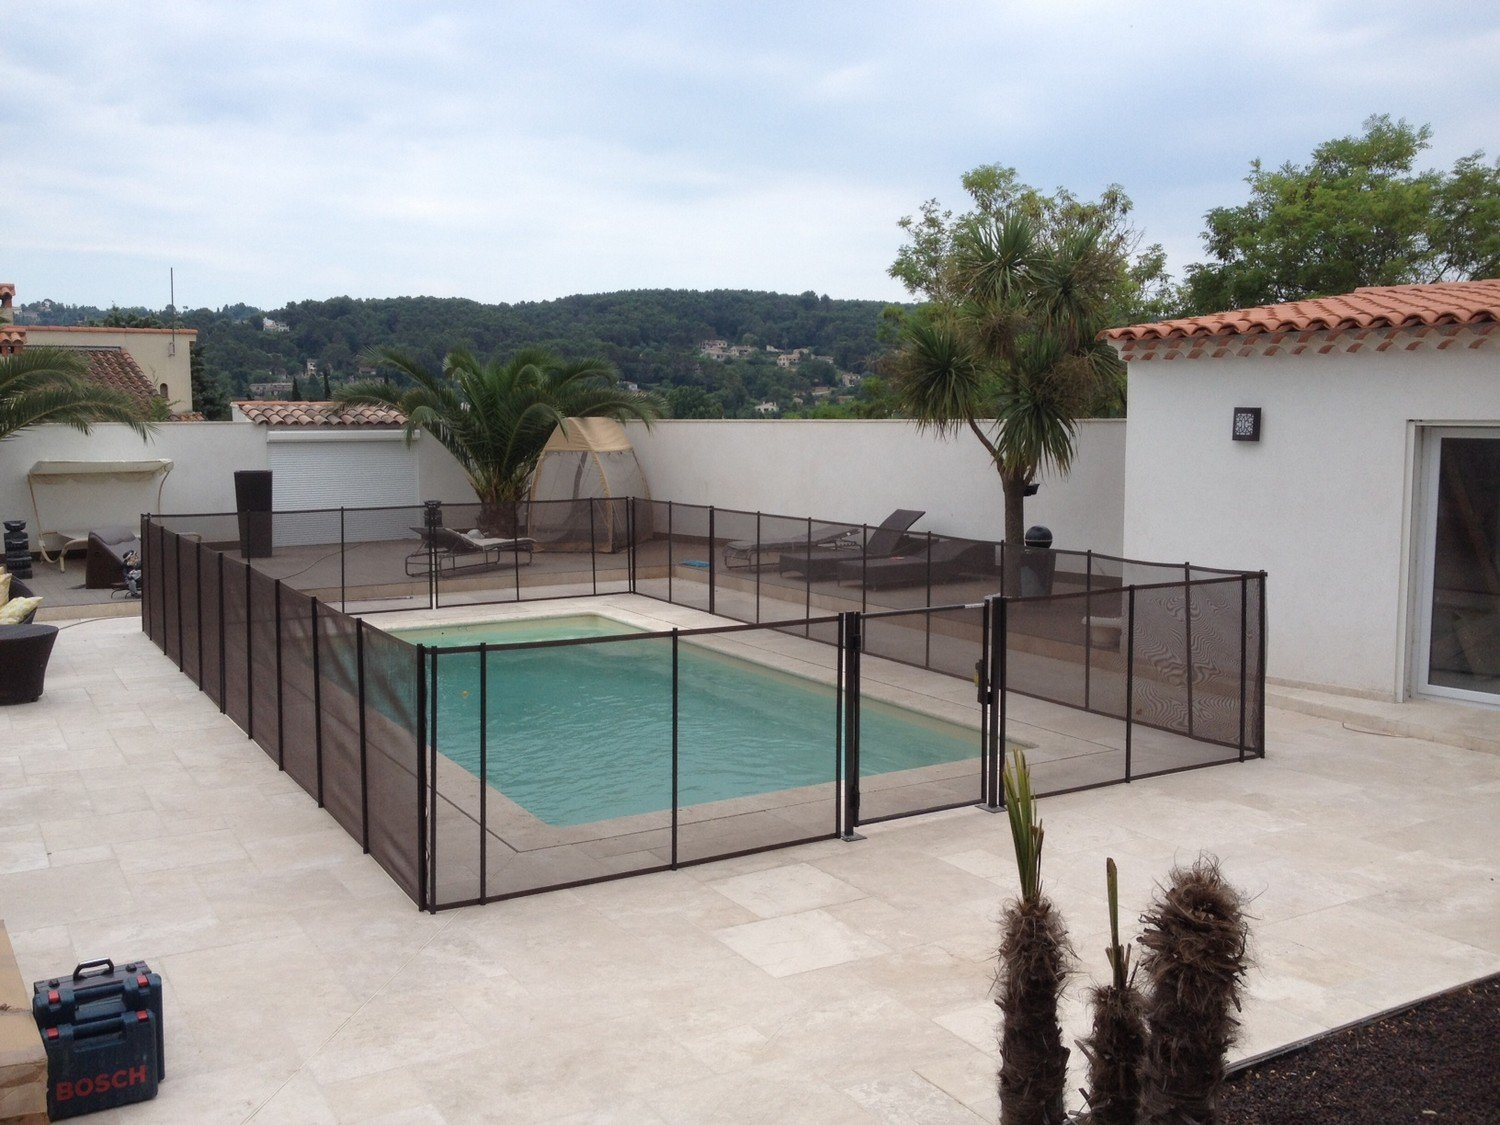 Barri re de s curit piscine la beethoven for Piscine barriere